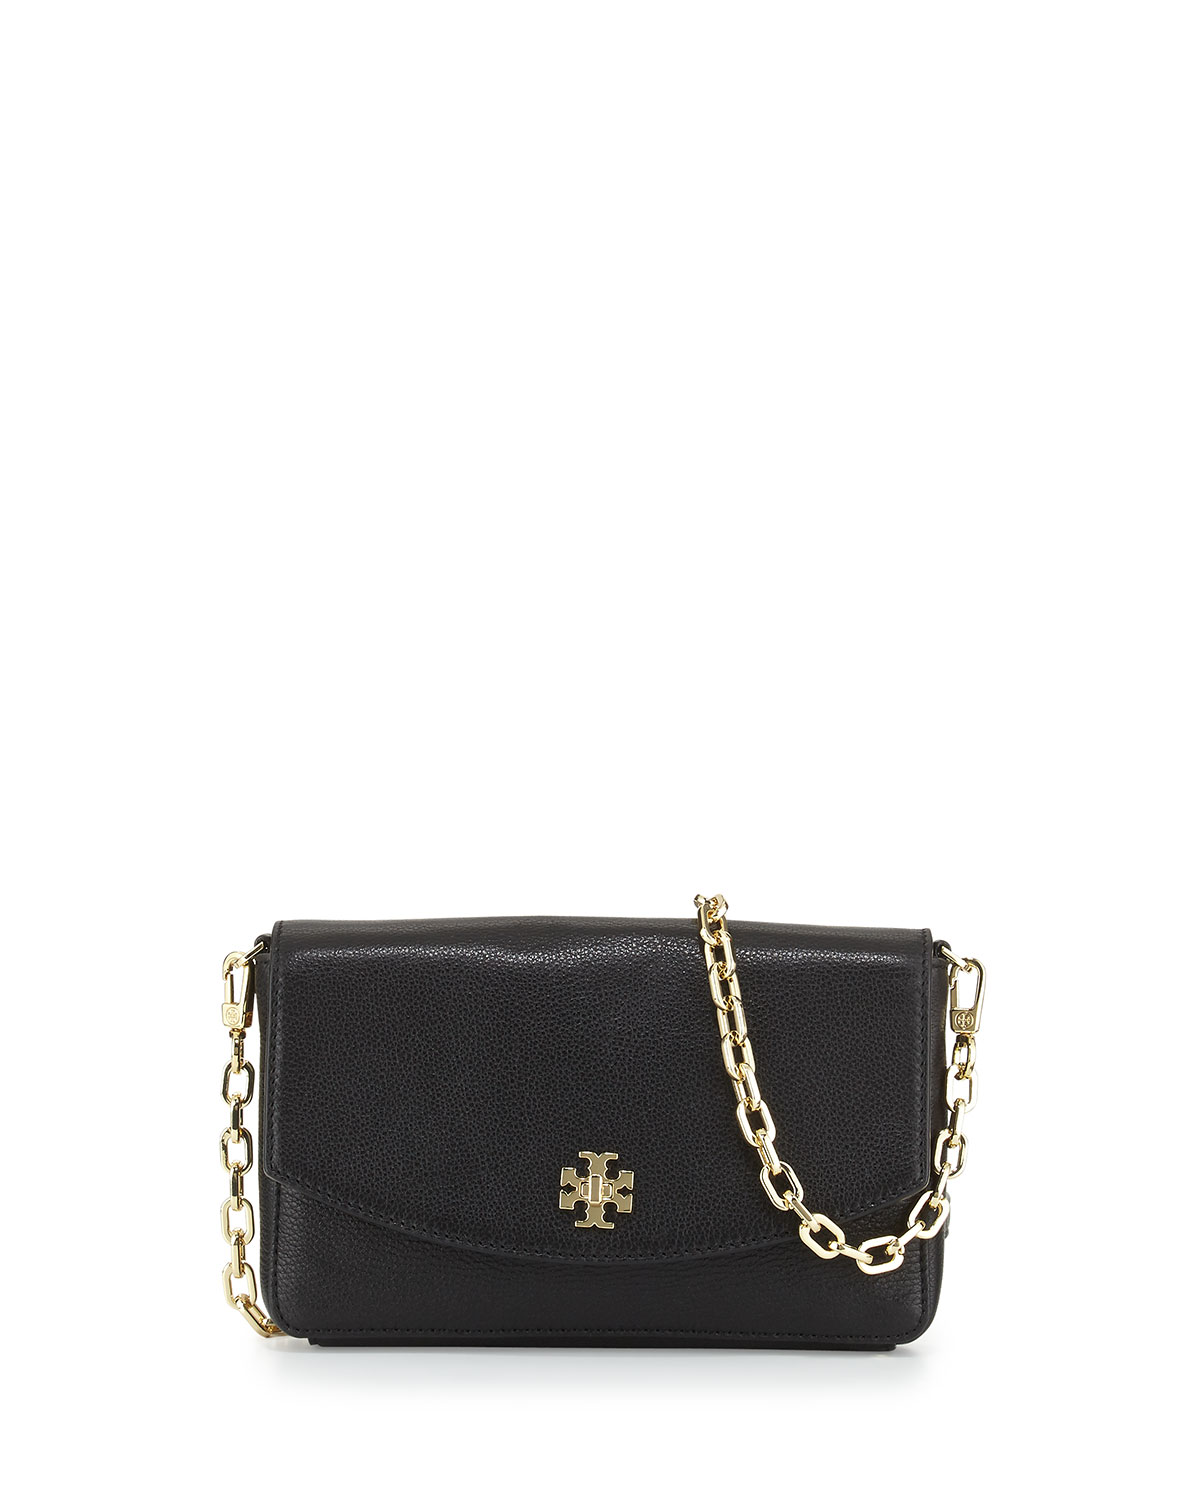 4d679ce4b Tory Burch Mercer Classic Leather Crossbody Bag